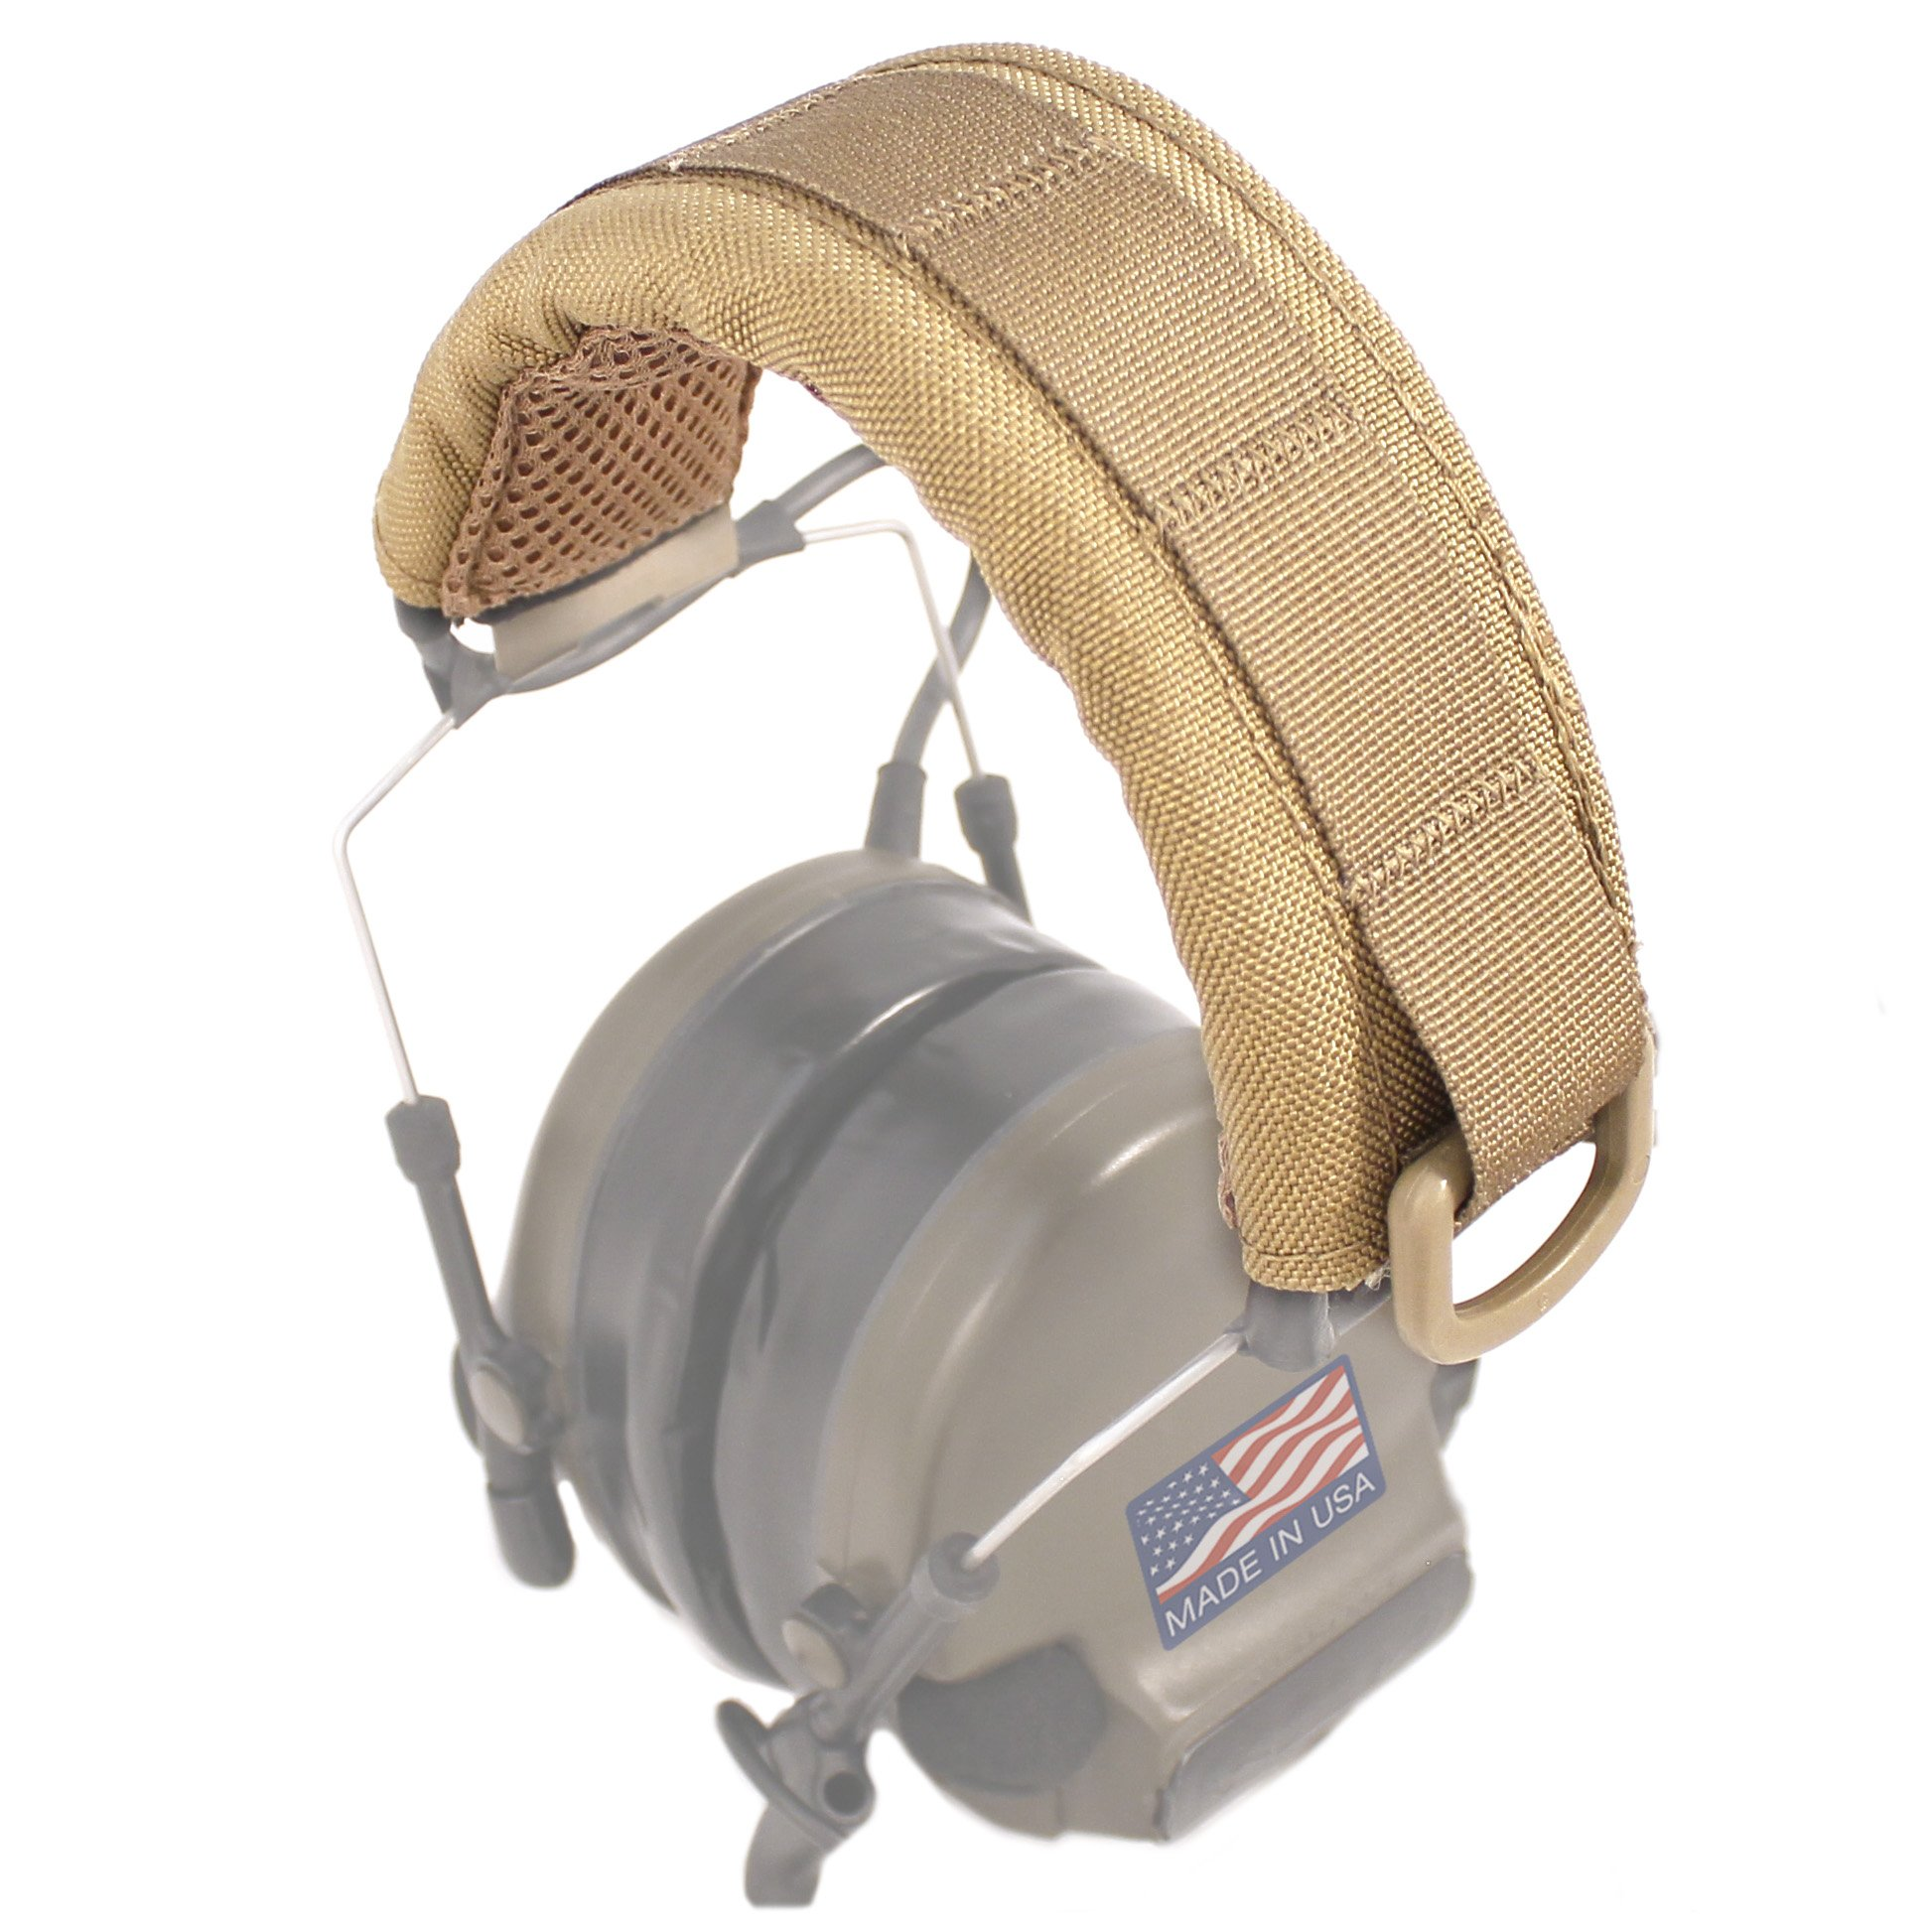 U.S. Tactical Sewing USTS Advanced Modular Headset Cover (Coyote Brown) by U.S. Tactical Sewing